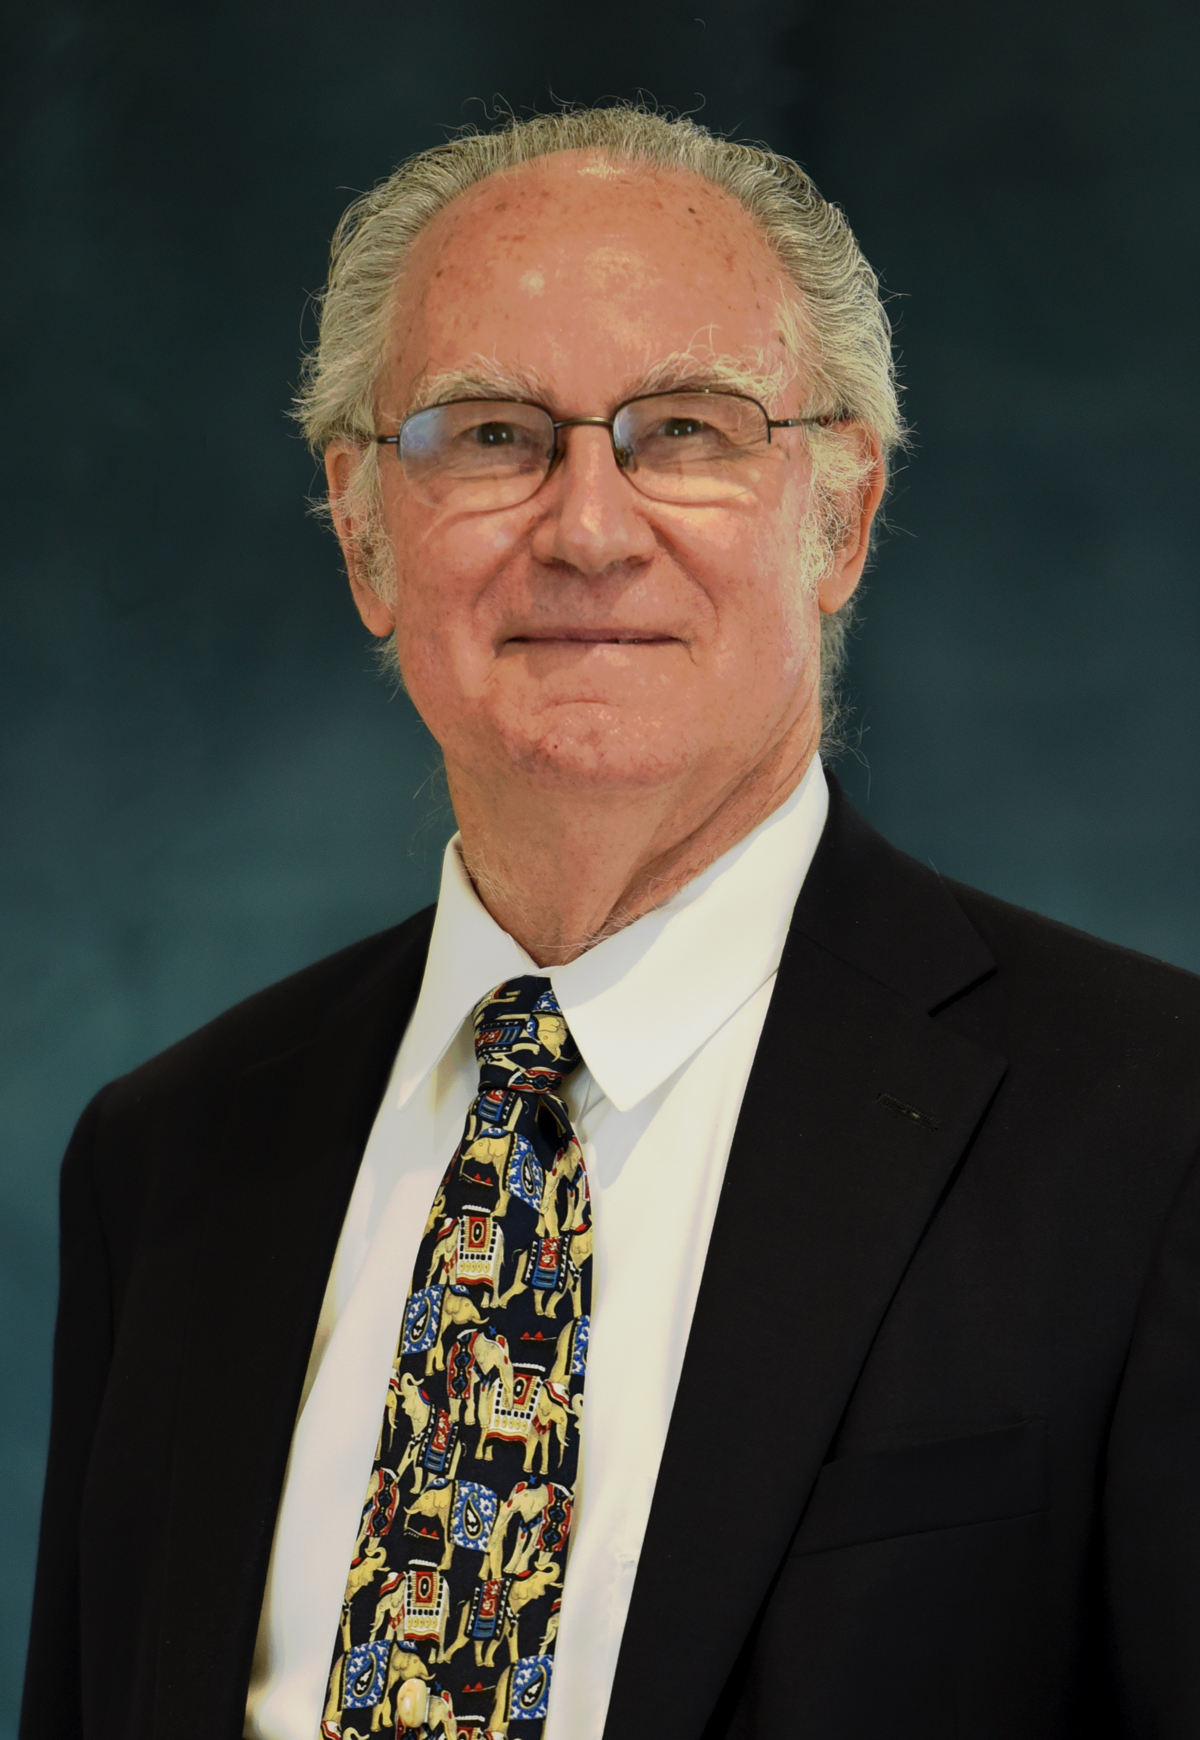 Dr. Richard L. Boyce